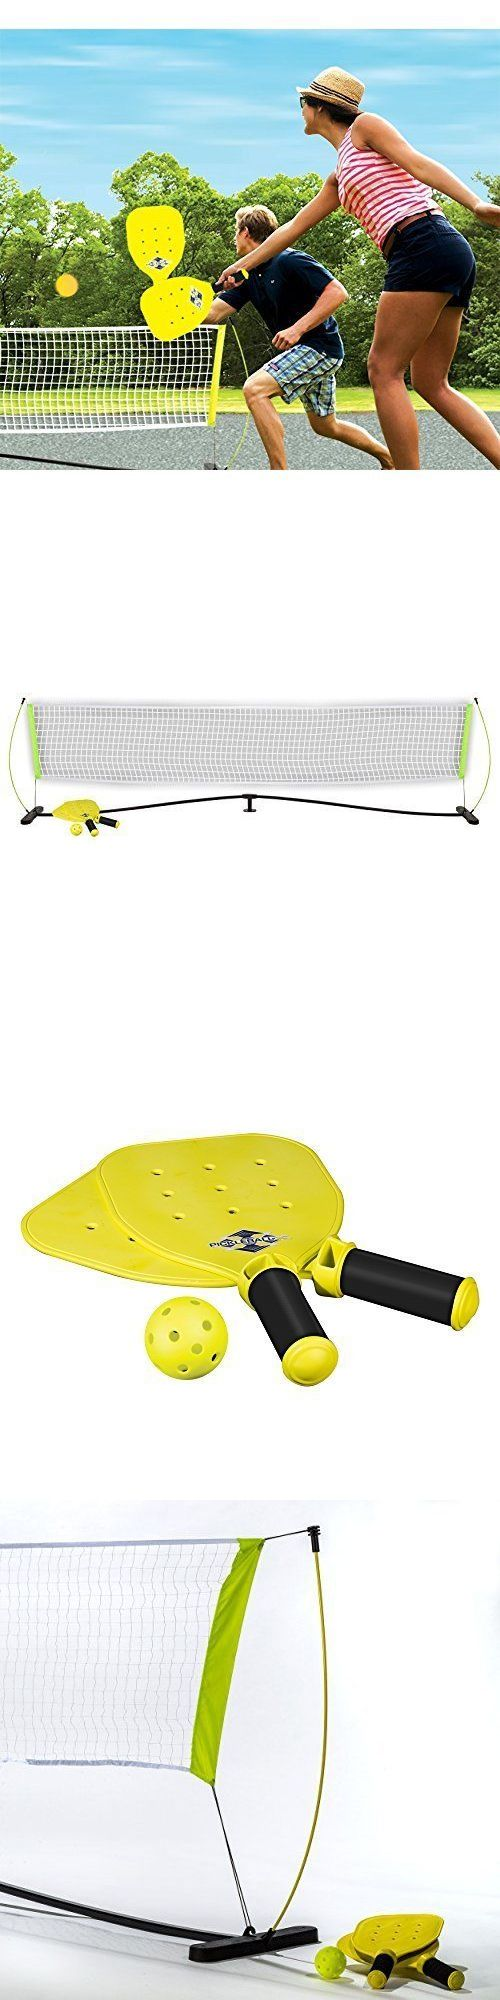 Other Tennis and Racquet Sports 159135: Pickleball Starter Set Net 2 Paddles 2 Balls Outdoor Game Official Set Us Open -> BUY IT NOW ONLY: $67.9 on eBay!